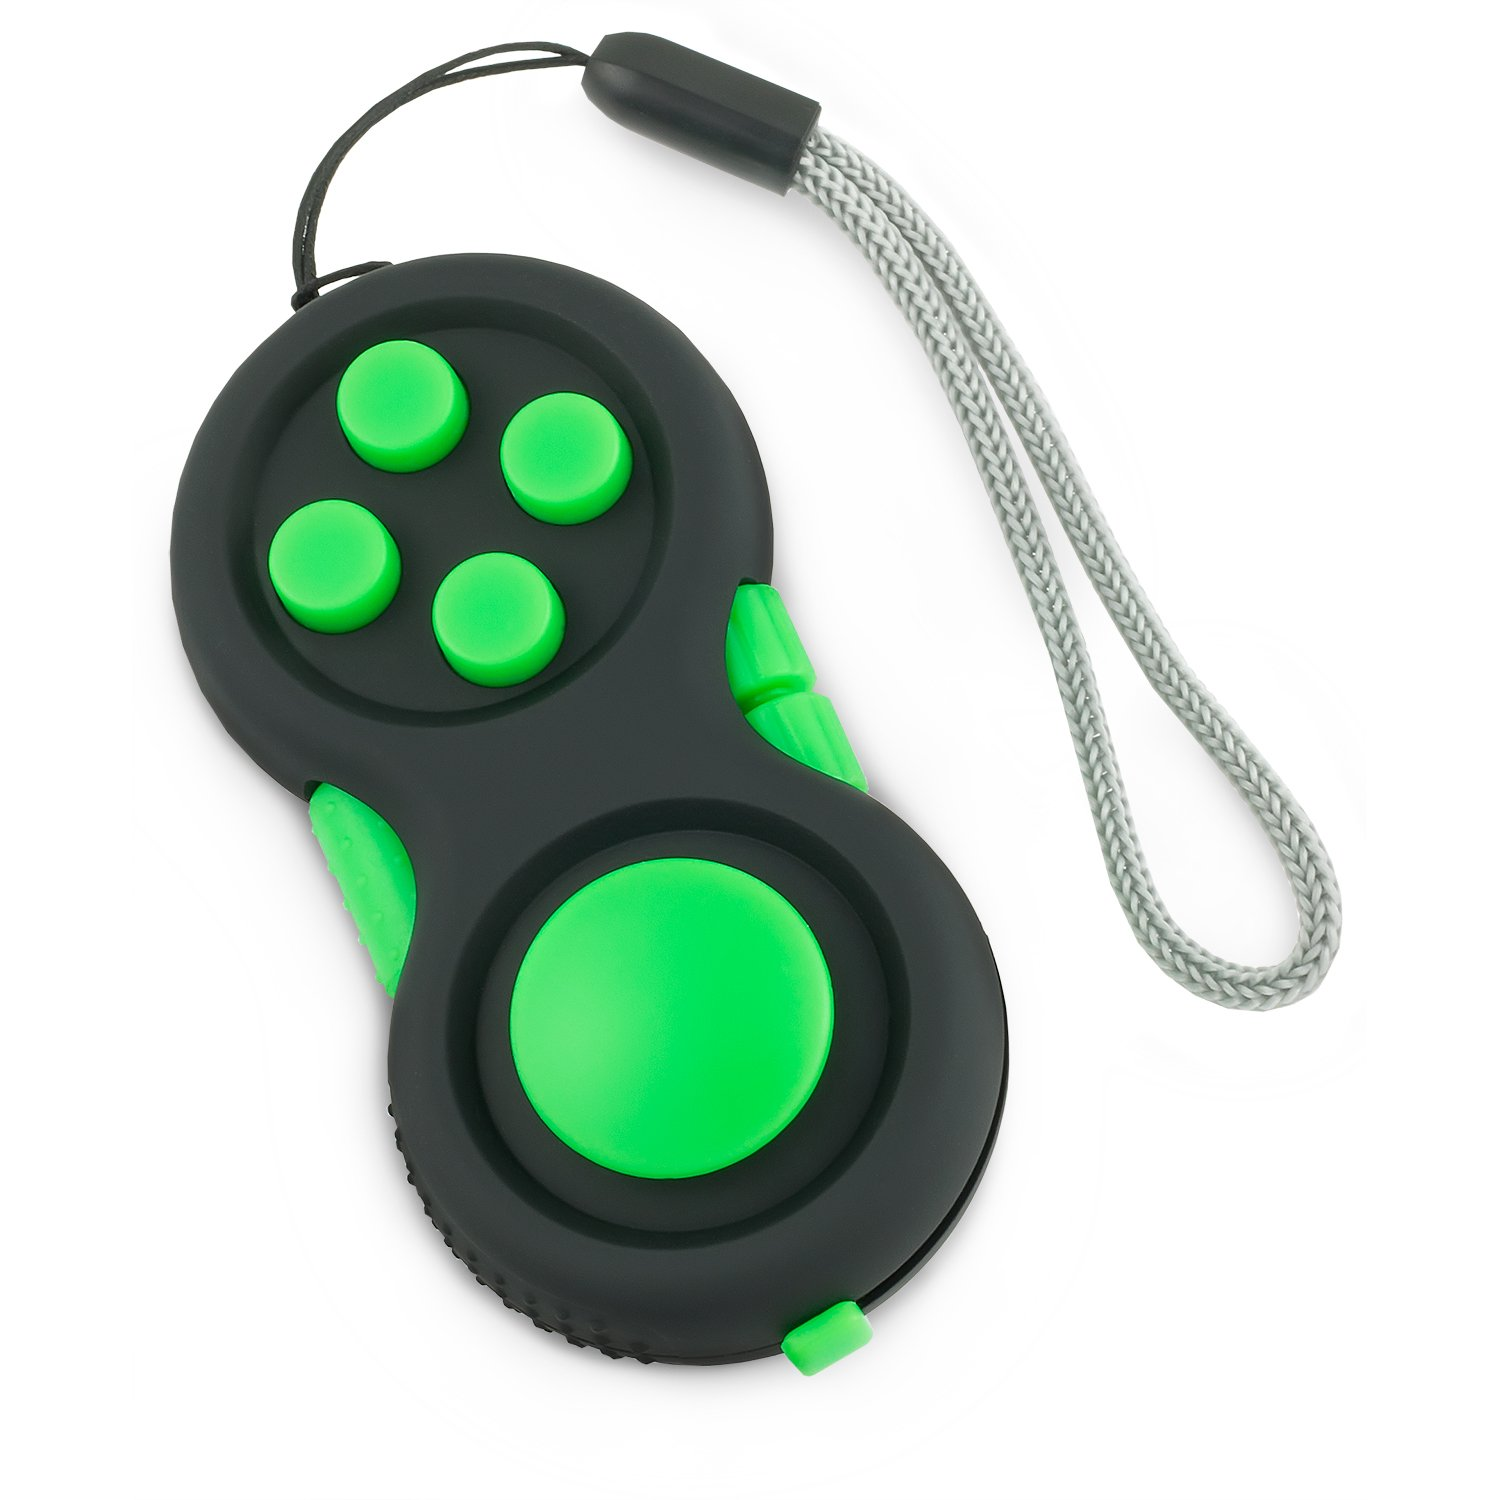 Steven G Premium Fidget Toy Pad Anxiety Sensory Hand Widget Prime with 8 Focus and Stress Relief Tools Used by Children, Teens and Adults, Green